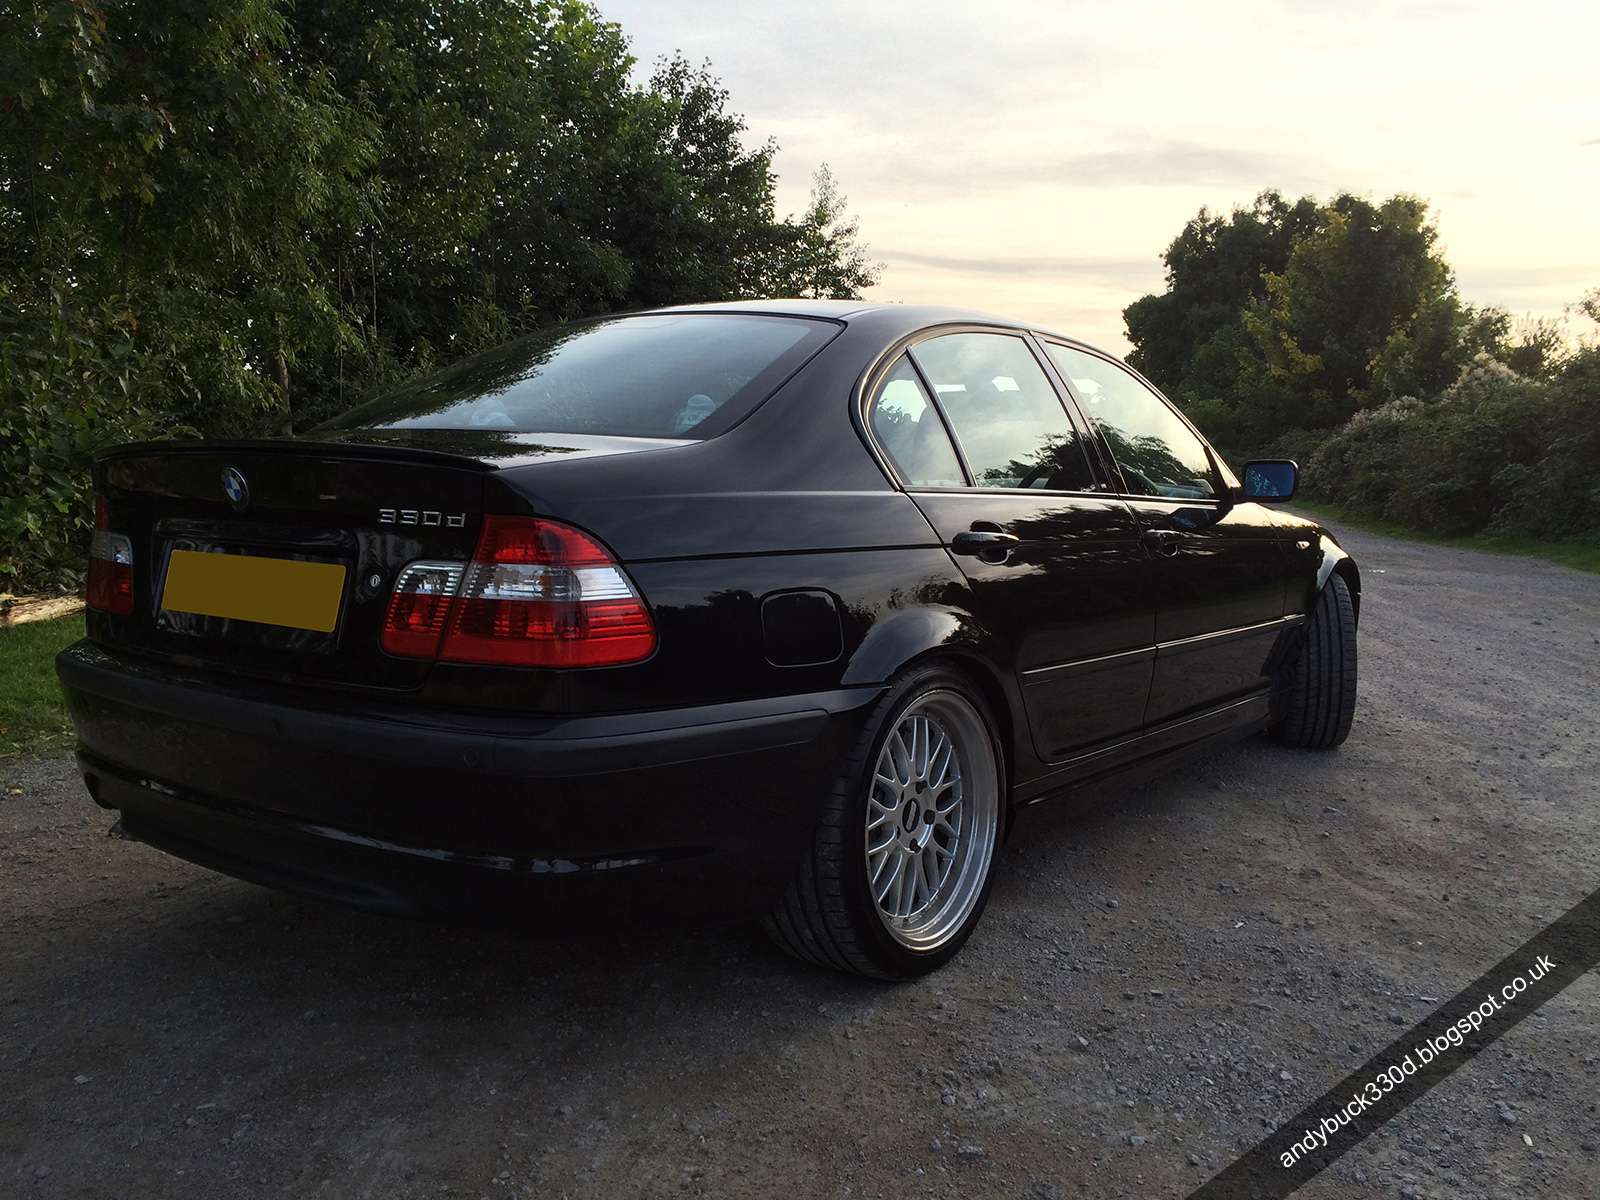 bmw e46 330d build blog rear wheel arch repaired and resprayed. Black Bedroom Furniture Sets. Home Design Ideas